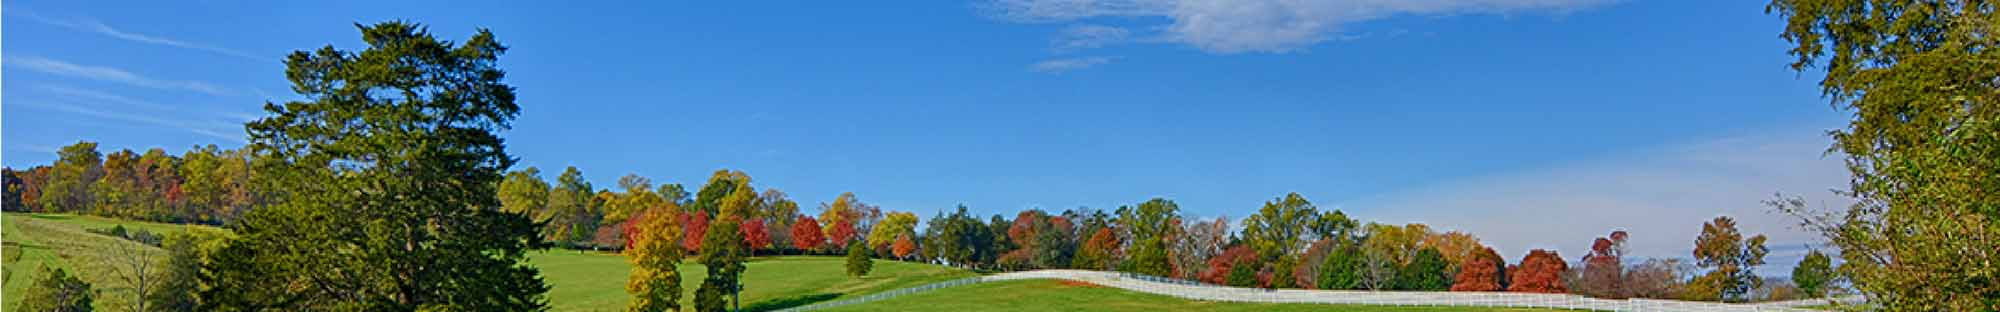 Farms in Orange County Virginia for Sale